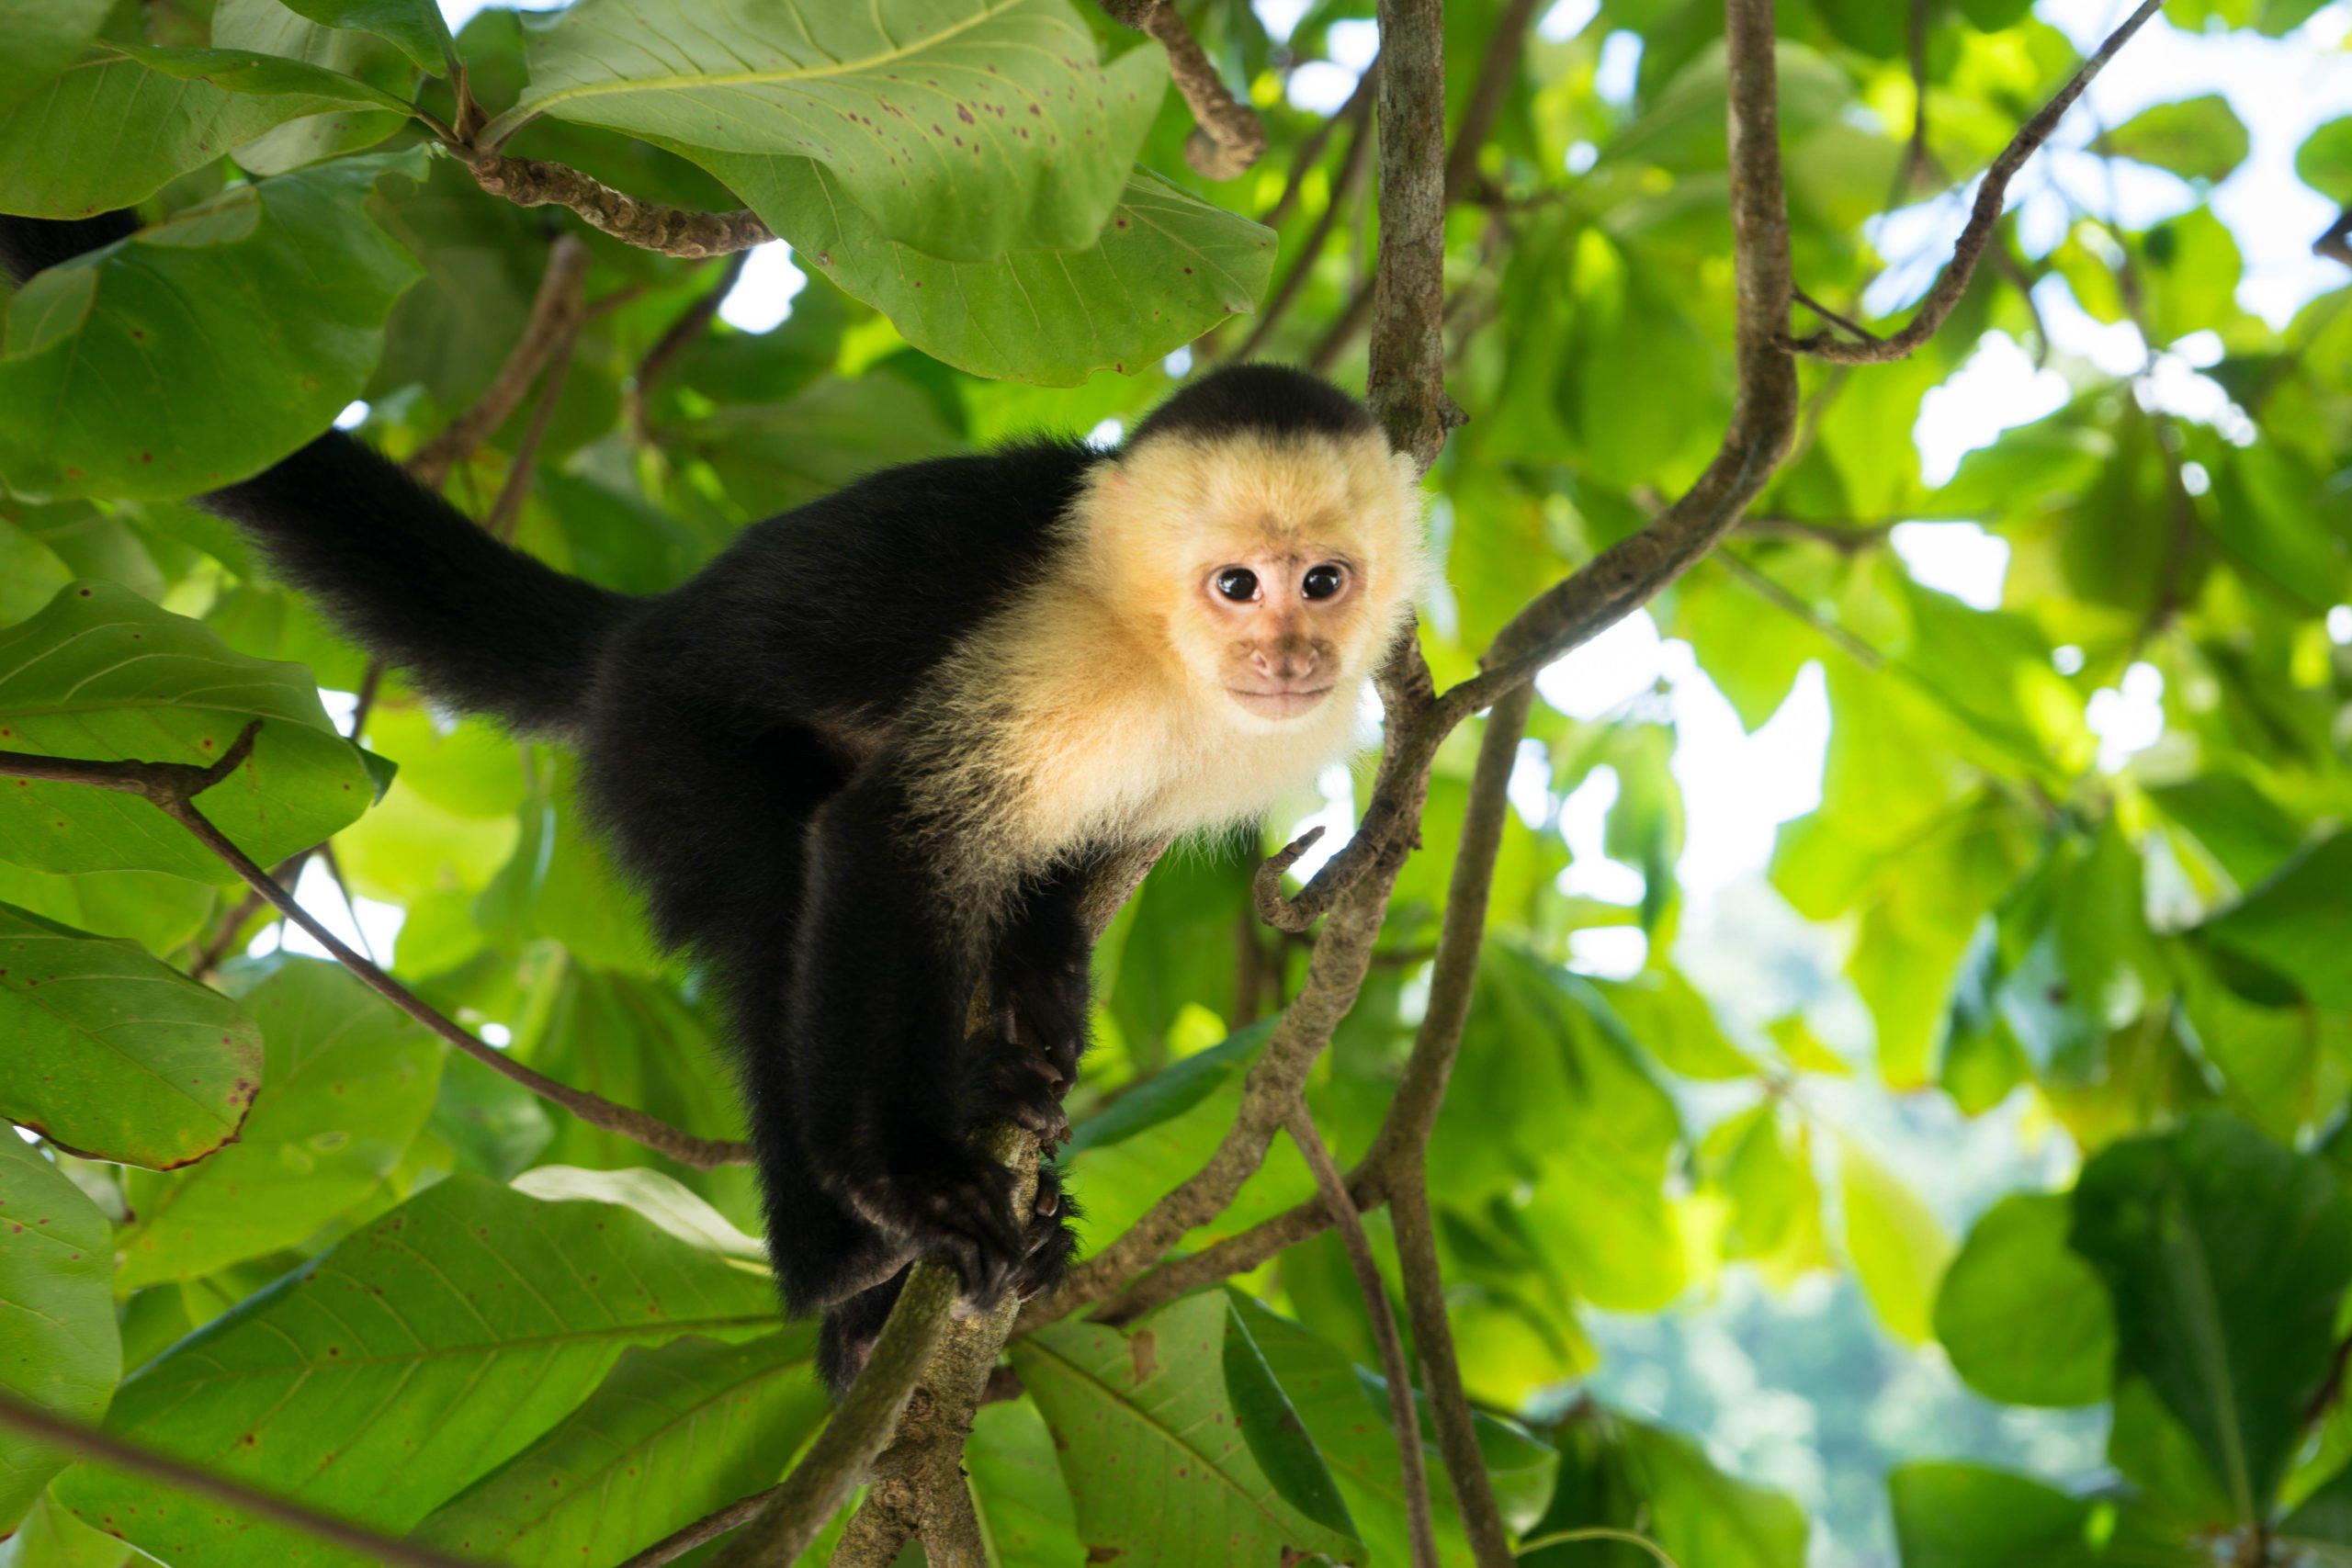 Discover The Diverse Flora And Fauna Of Costa Rica On The On The Tortuguero, Arenal & Manuel Antonio 10 Day Adventure Package Tour